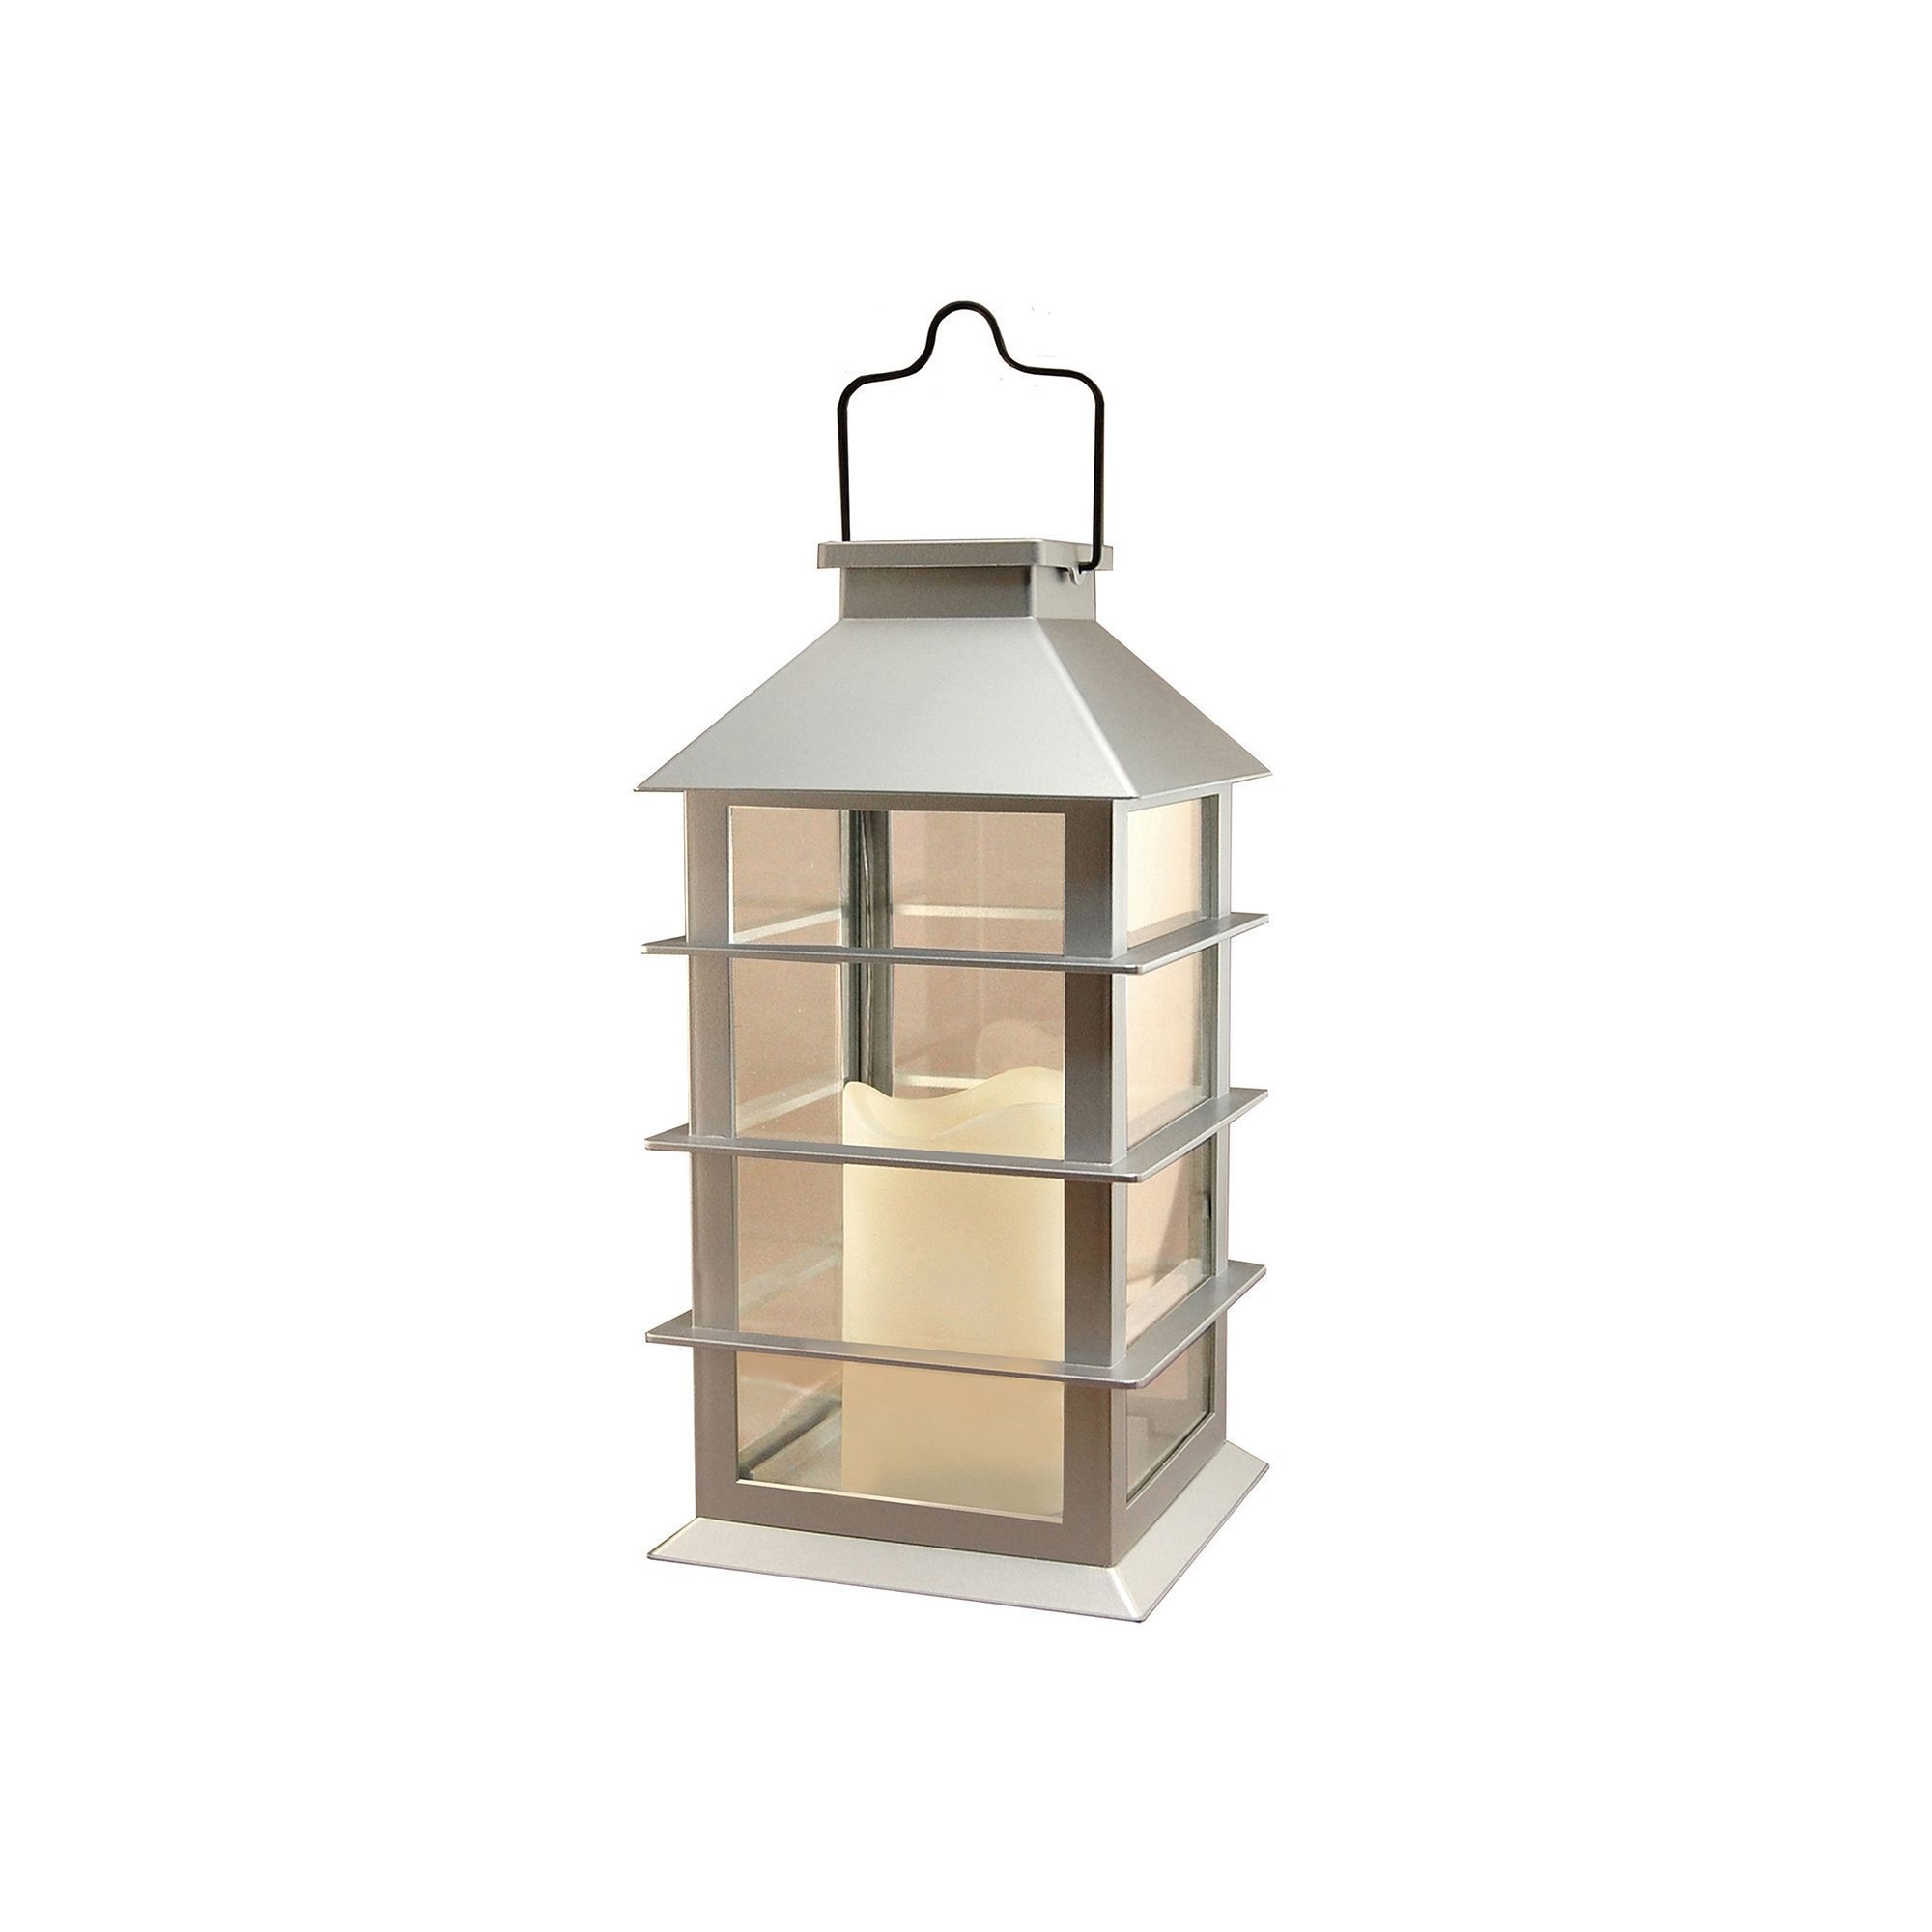 Famous Lumabase Silver Solar Lantern & Led Candle, Clrs (View 4 of 20)